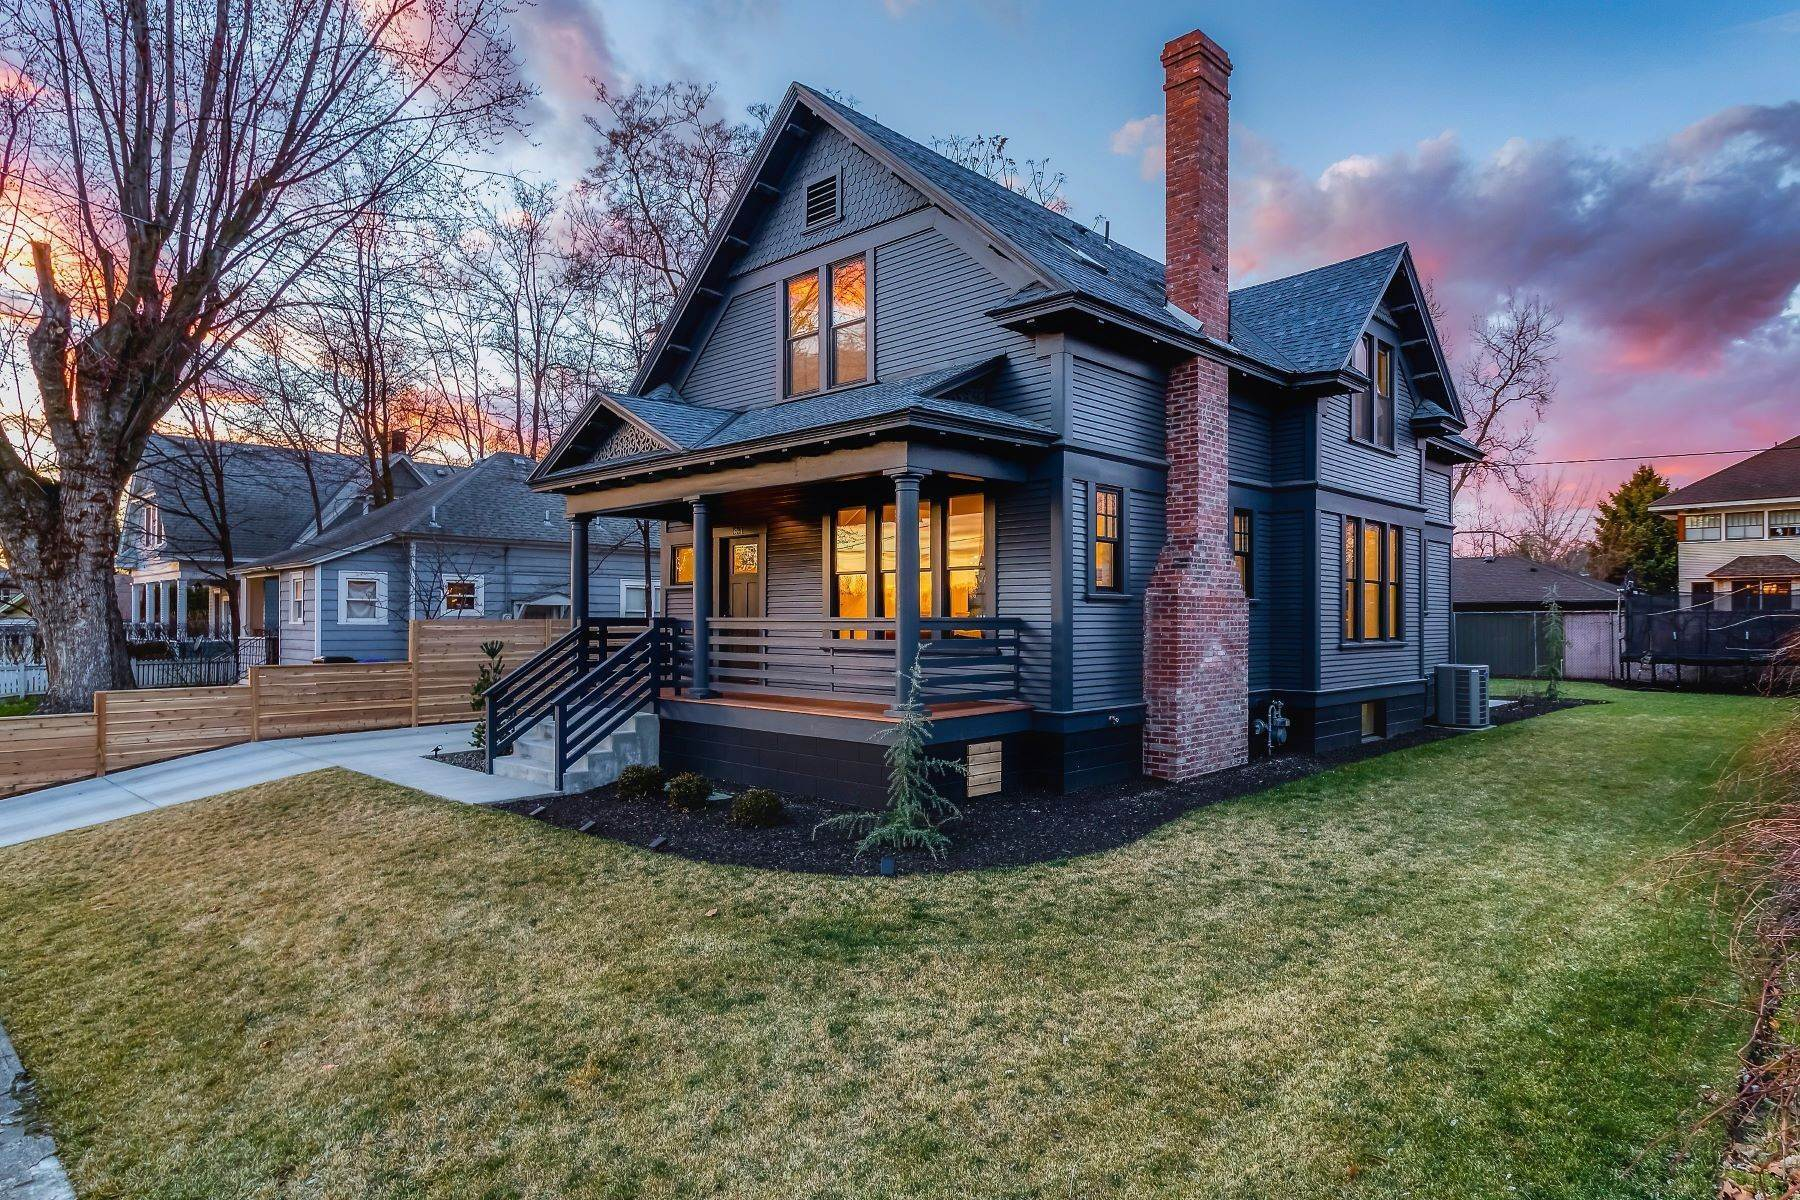 Single Family Homes for Sale at Rejuvenated Historic Home 531 Newell Street Walla Walla, Washington 99362